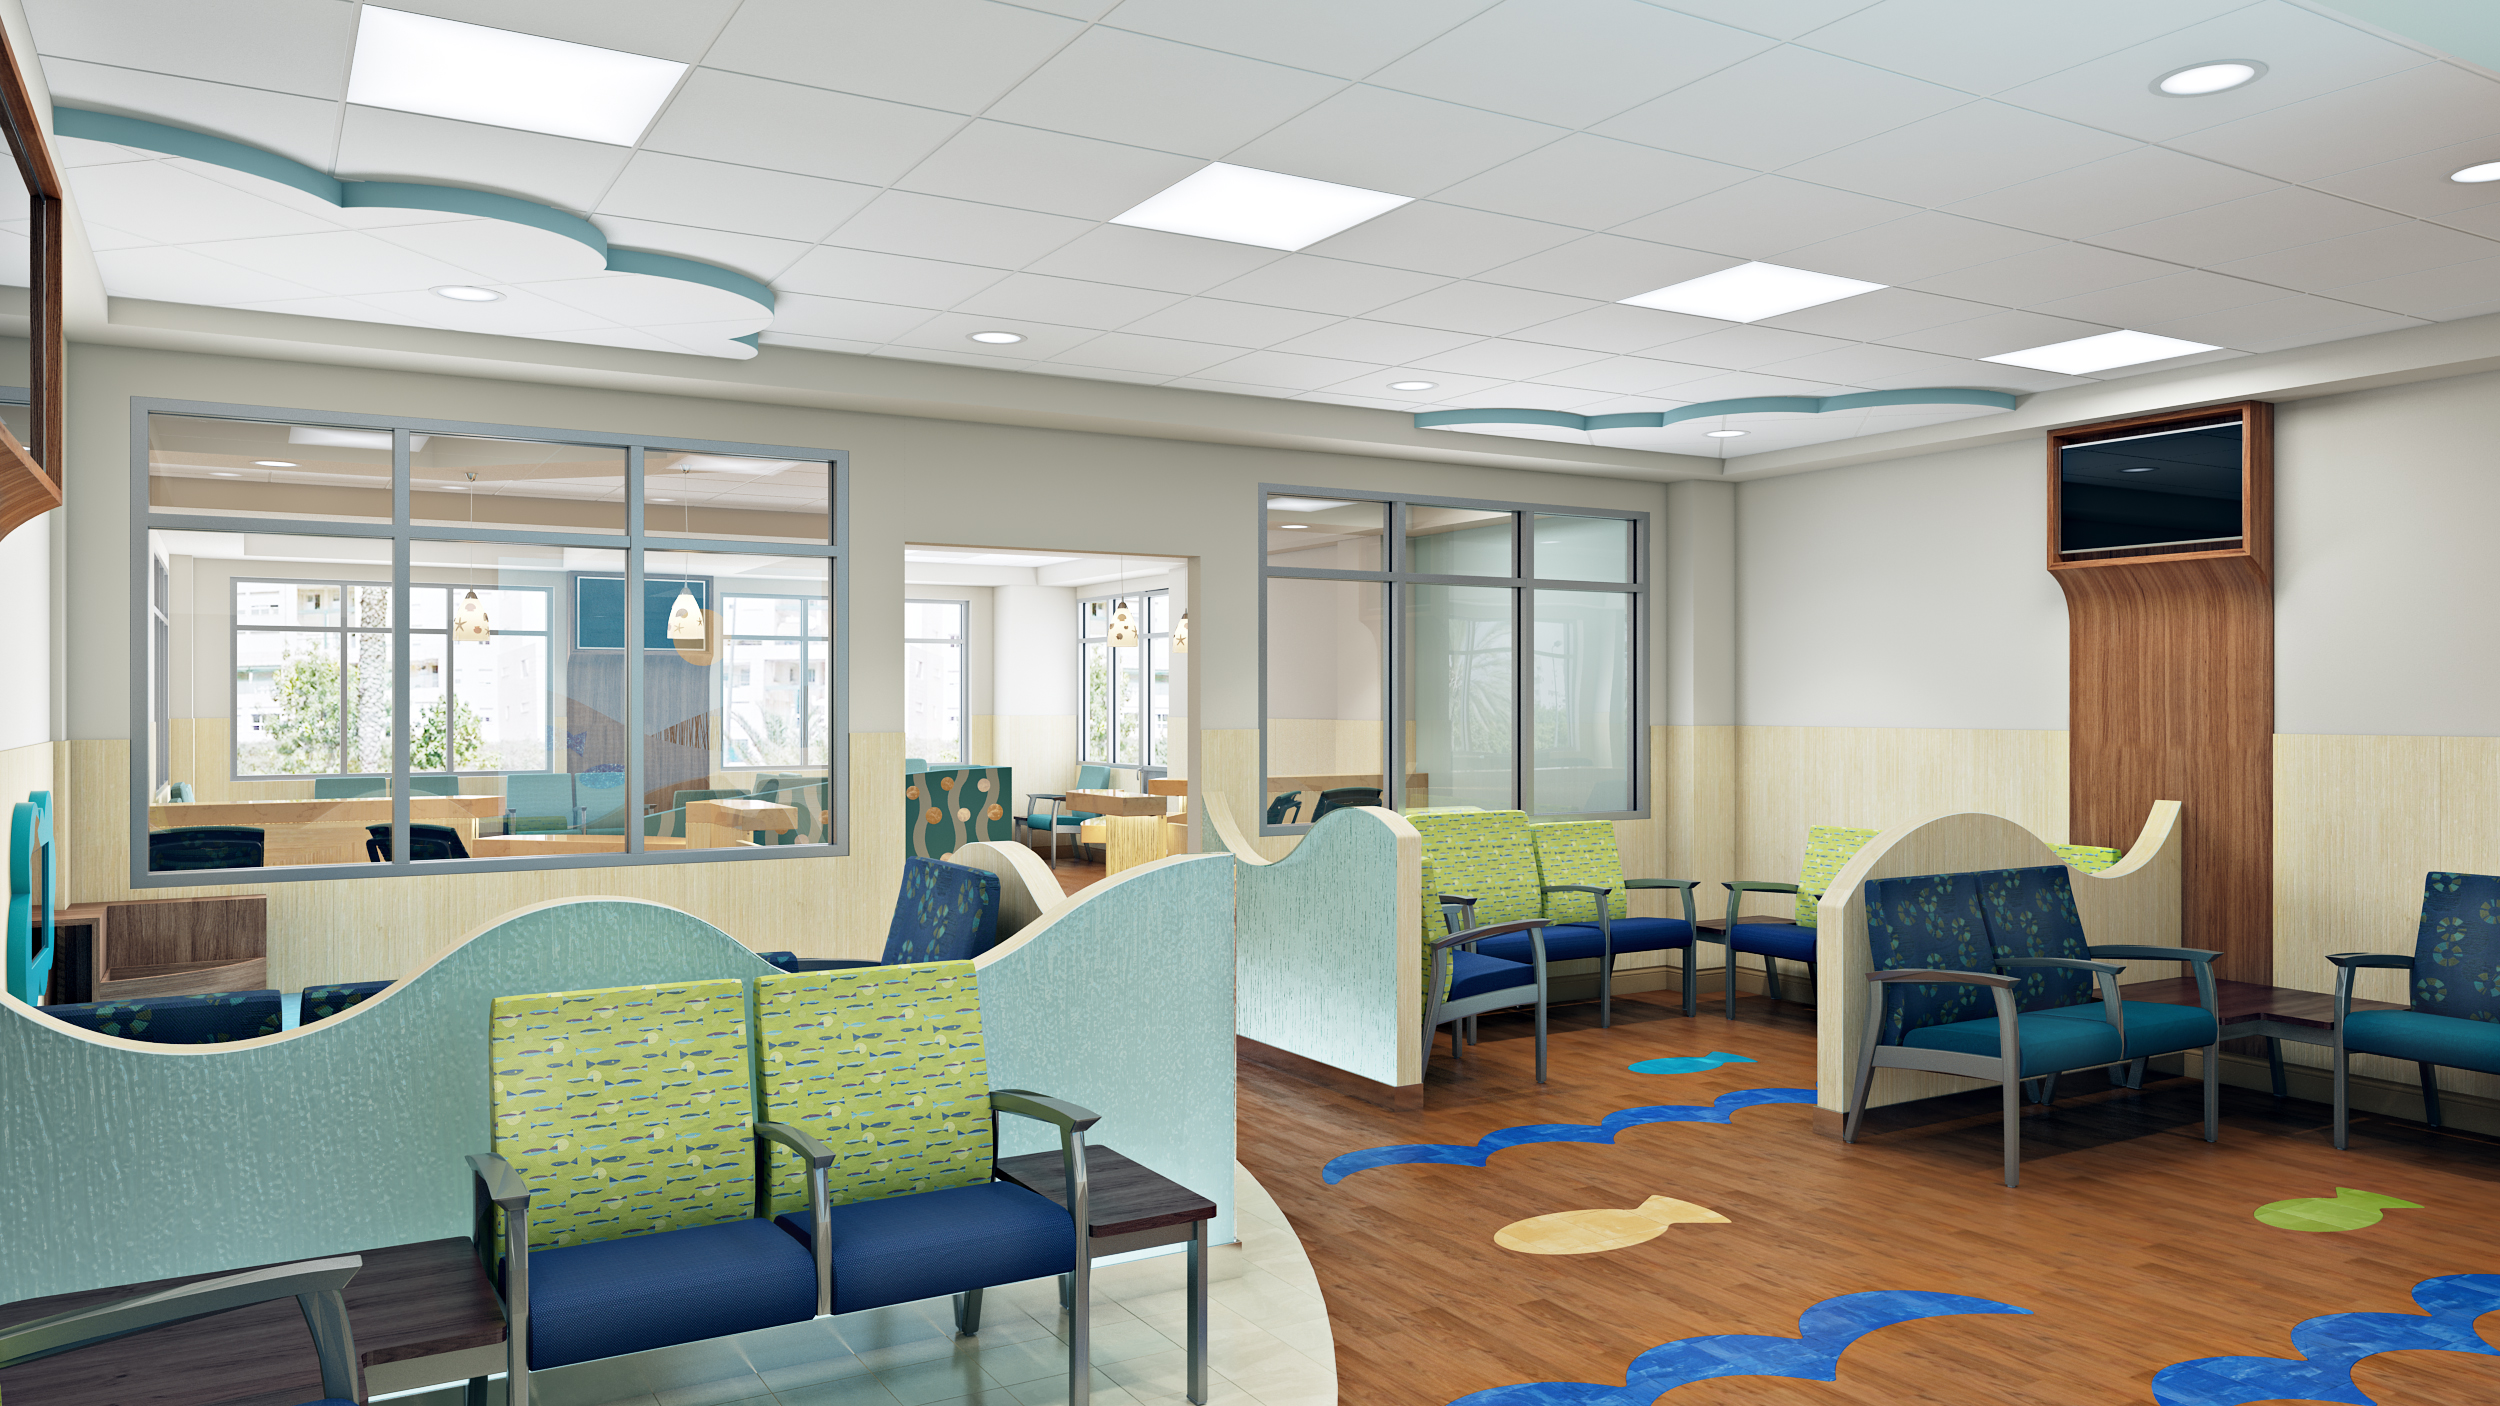 3D Rendering Miami Medical Cente